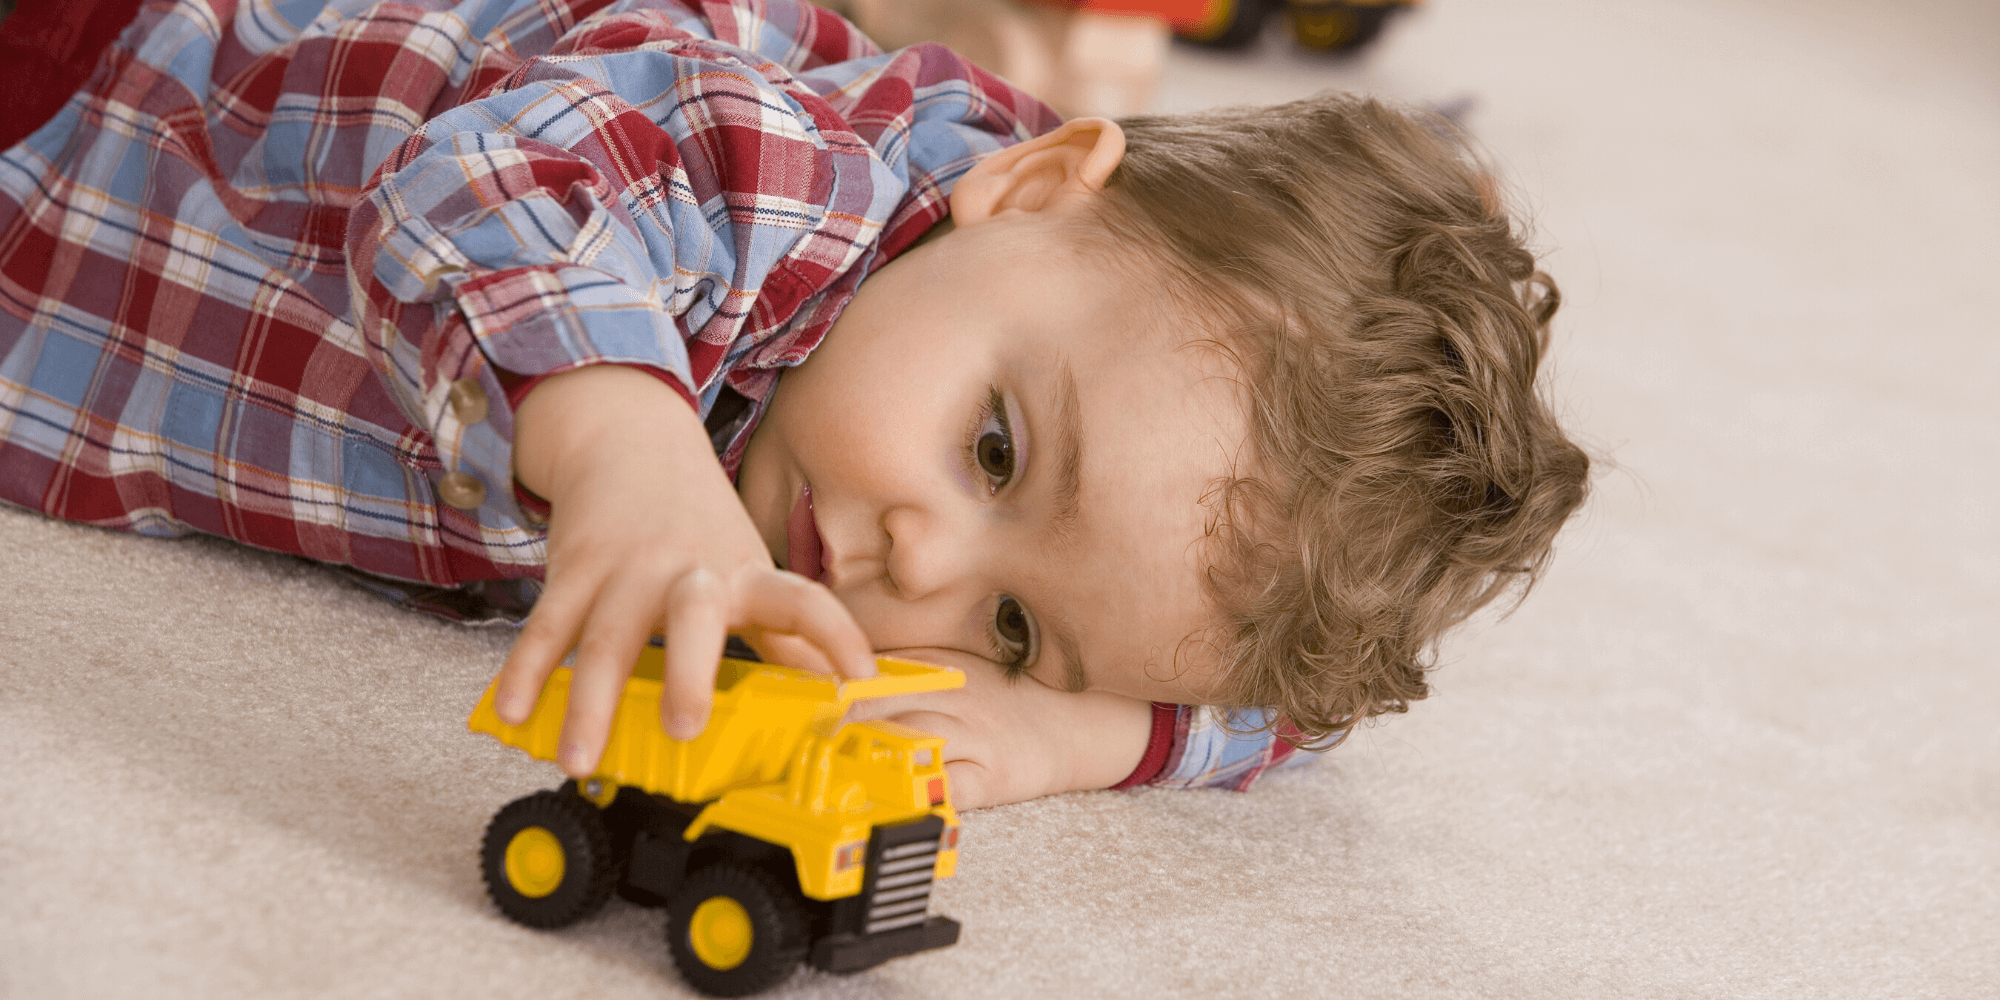 Little boy playing with his yellow toy car